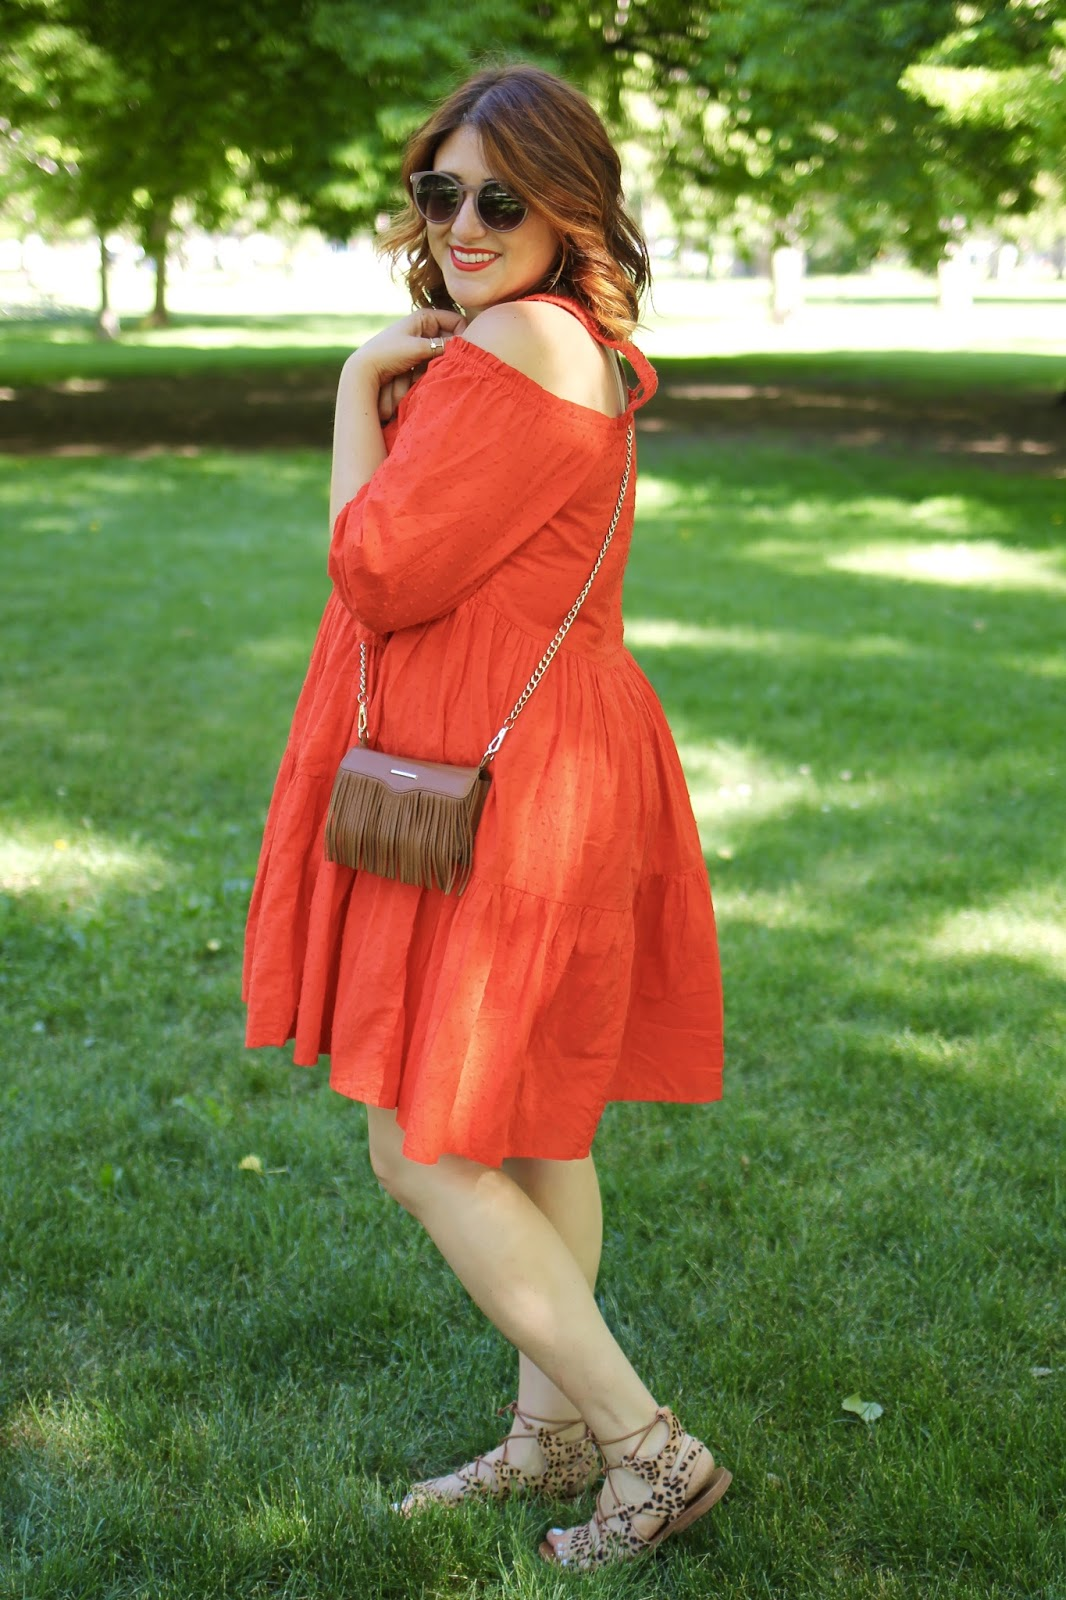 red H&M tiered dress, Red hair, rebecca minkoff phone case, cute outfit for summer